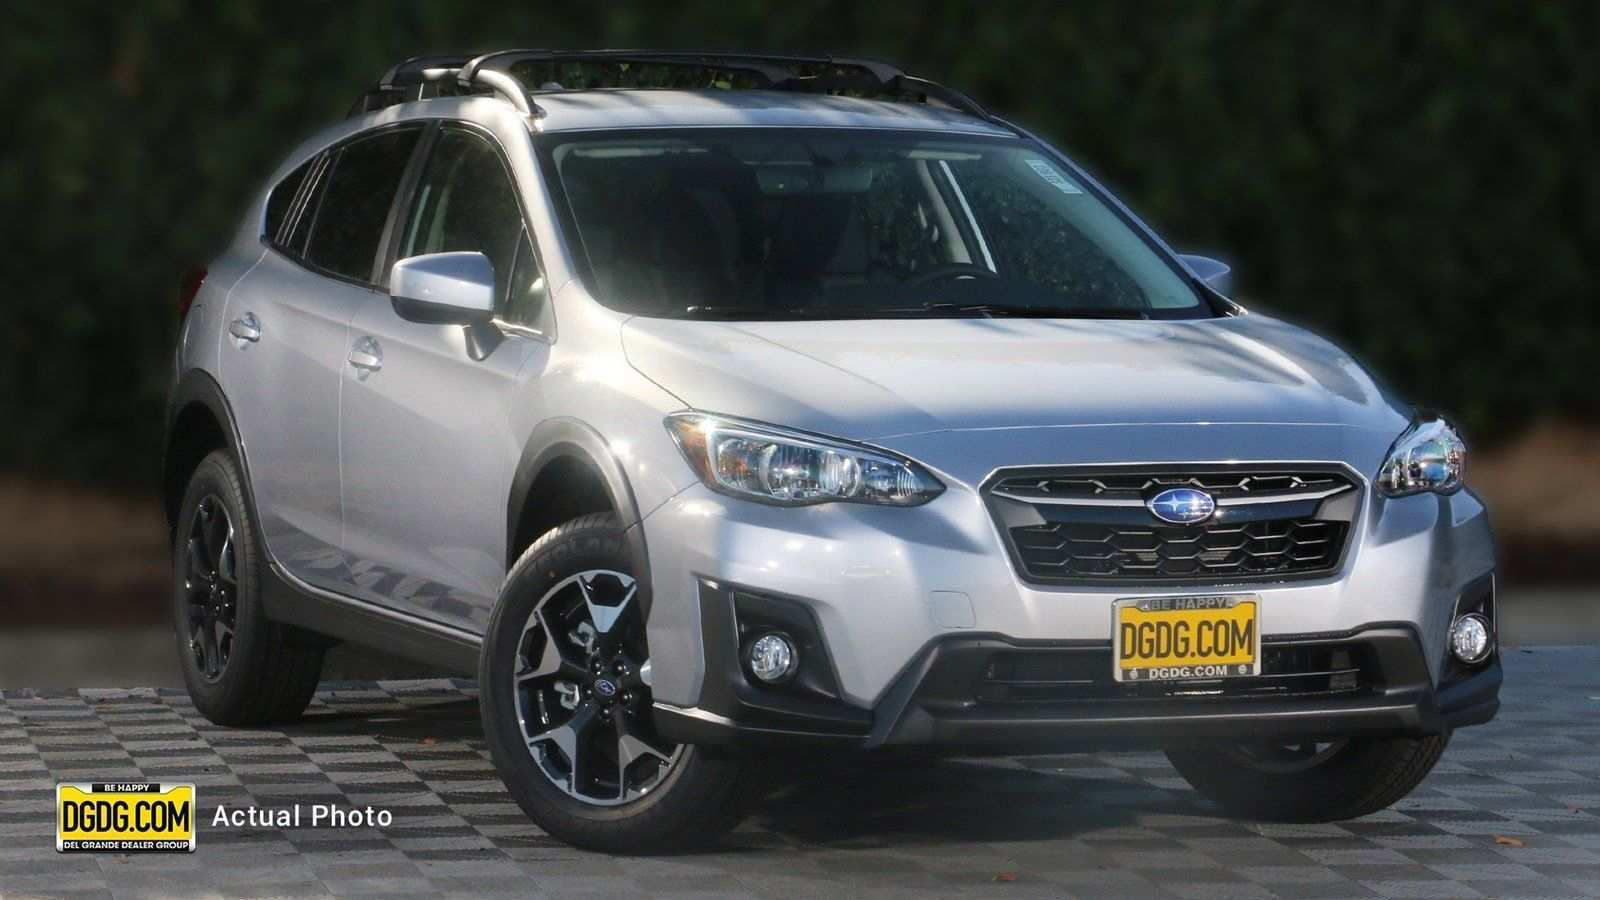 84 Great 2019 Subaru Crosstrek Kbb Spy Shoot for 2019 Subaru Crosstrek Kbb